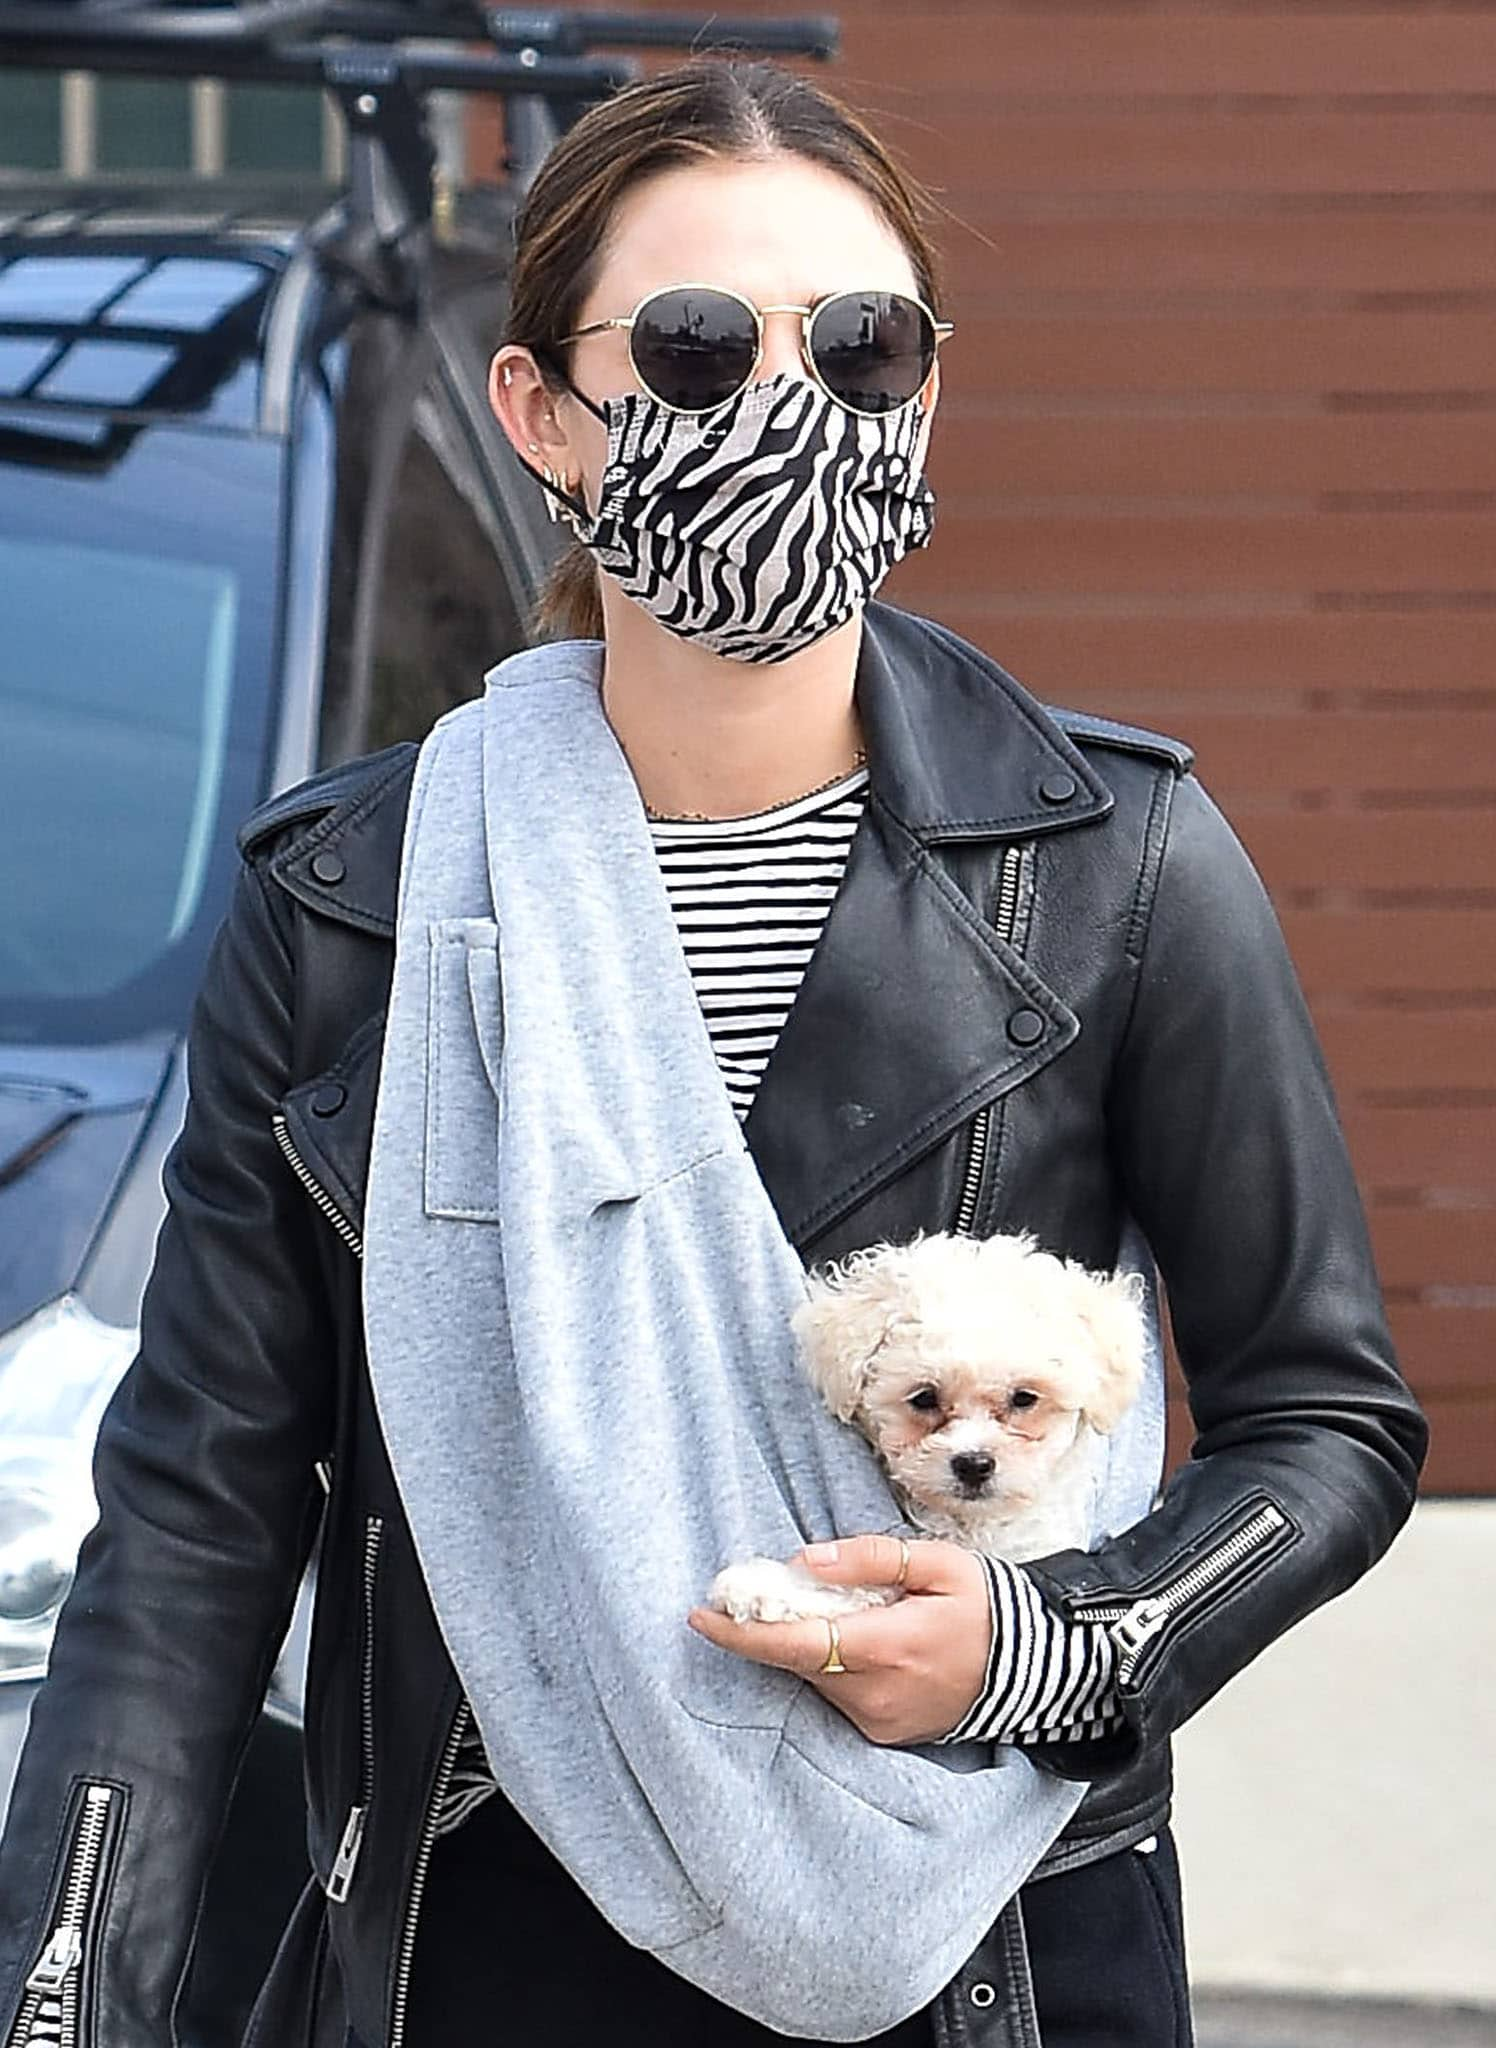 Lucy Hale stays safe with a Maskc zebra-striped face mask